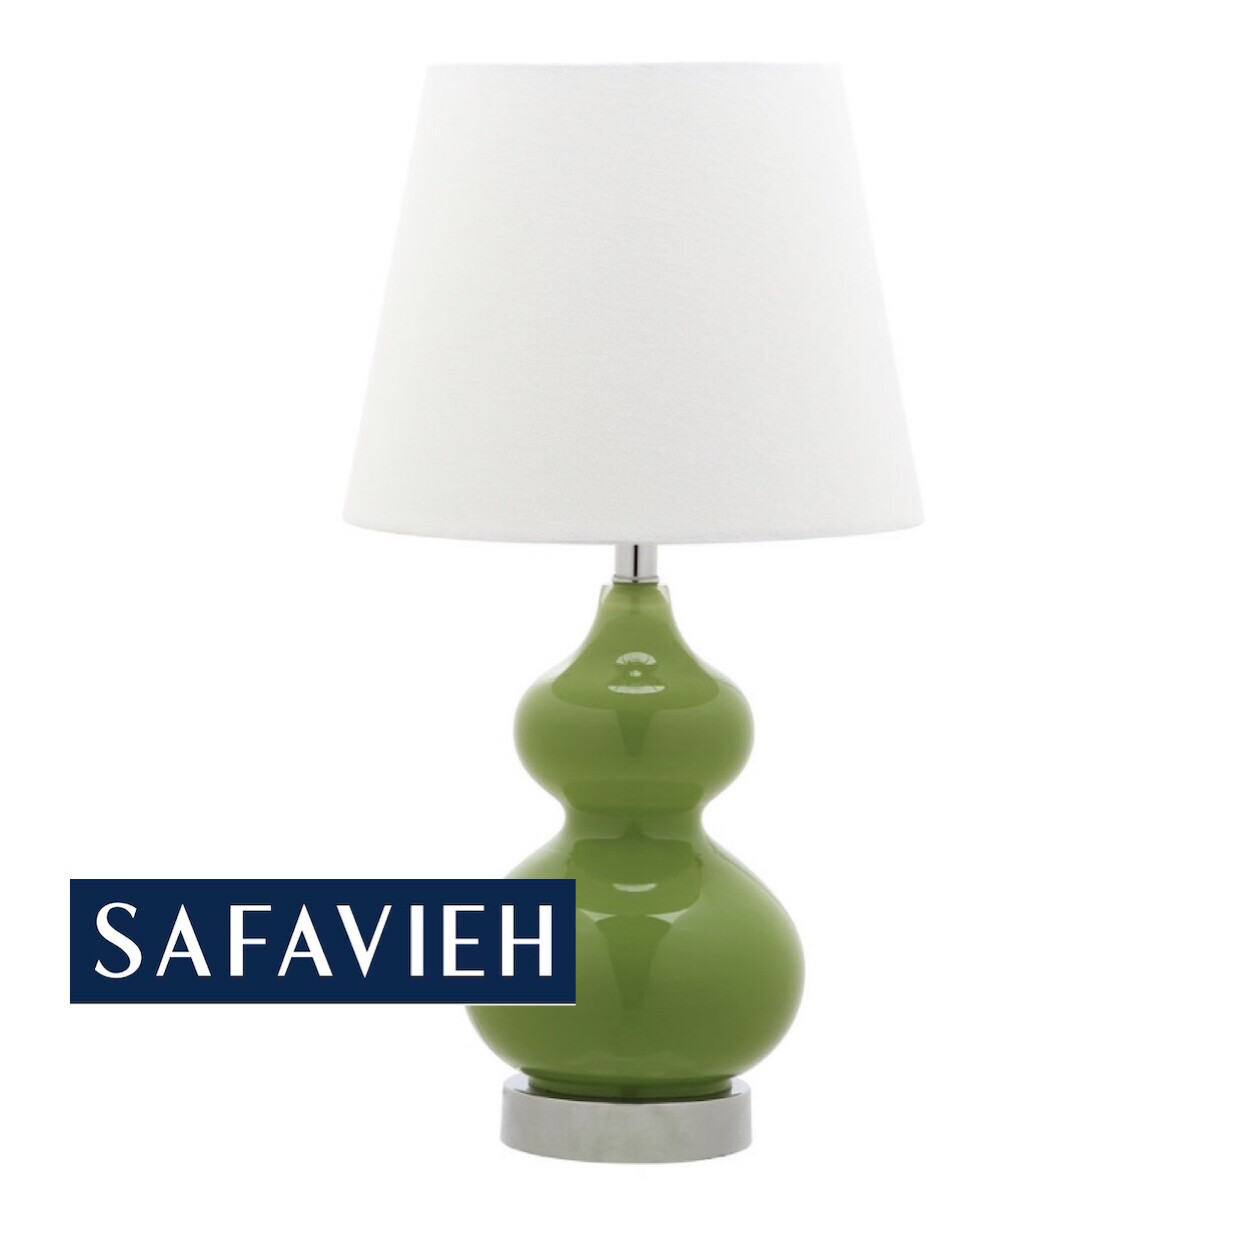 Safavieh Green Table Lamp